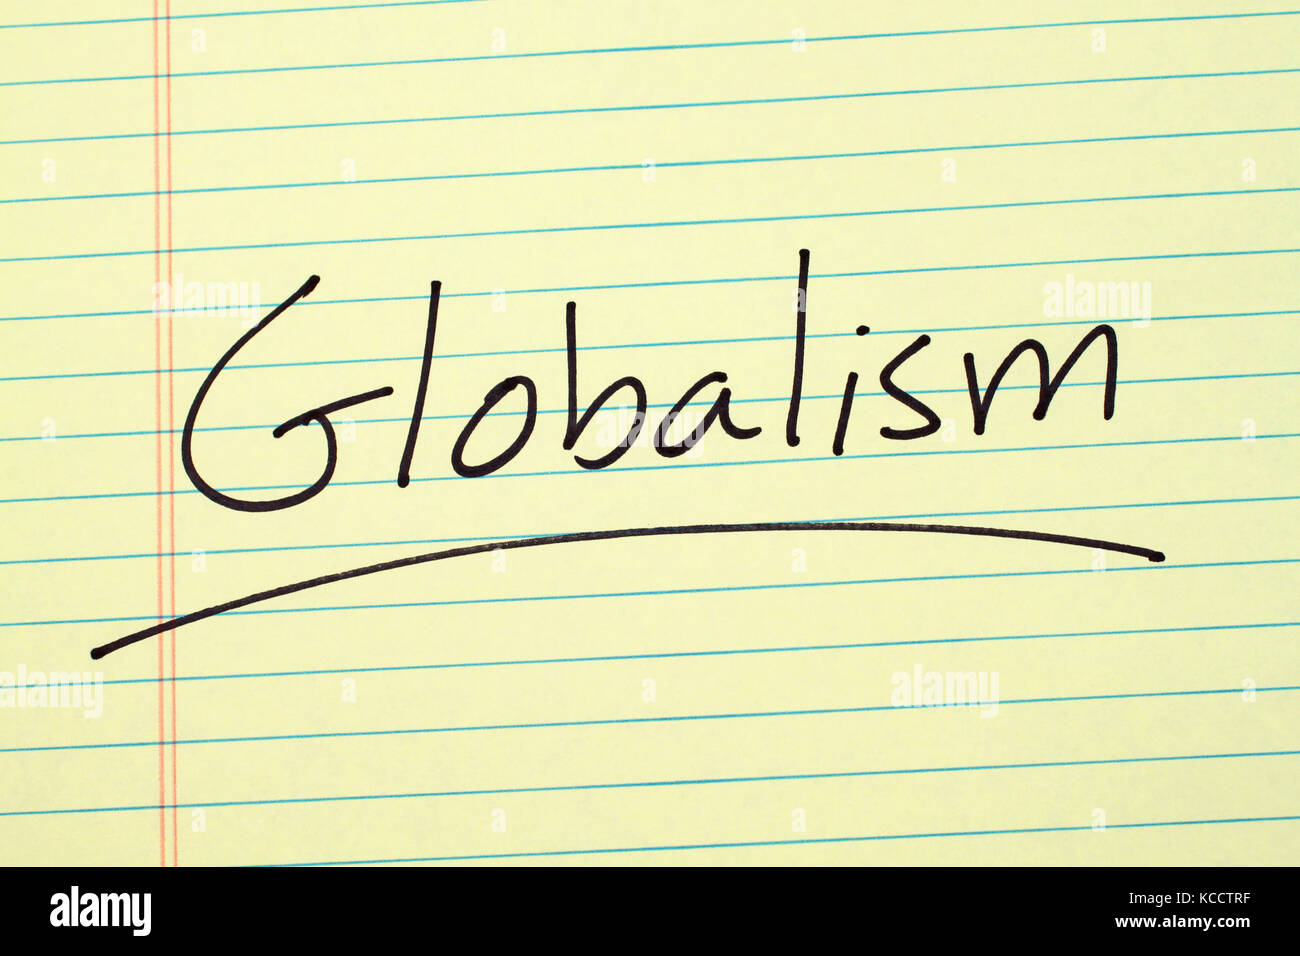 The word 'Globalism' underlined on a yellow legal pad - Stock Image